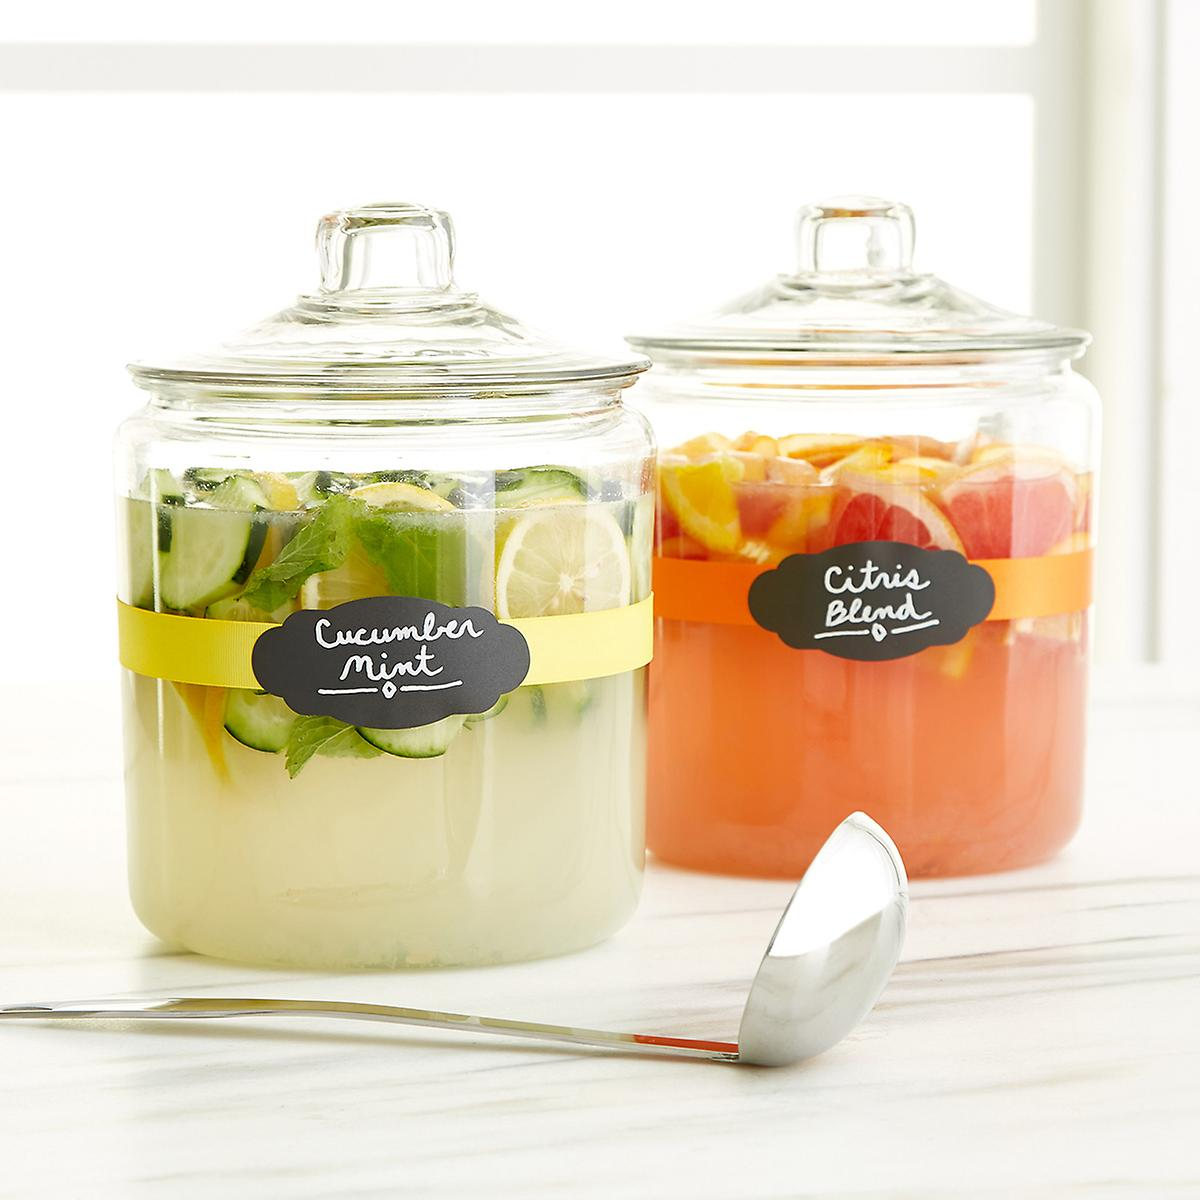 anchor hocking glass canisters with glass lids the container store anchor hocking glass canisters with glass lids